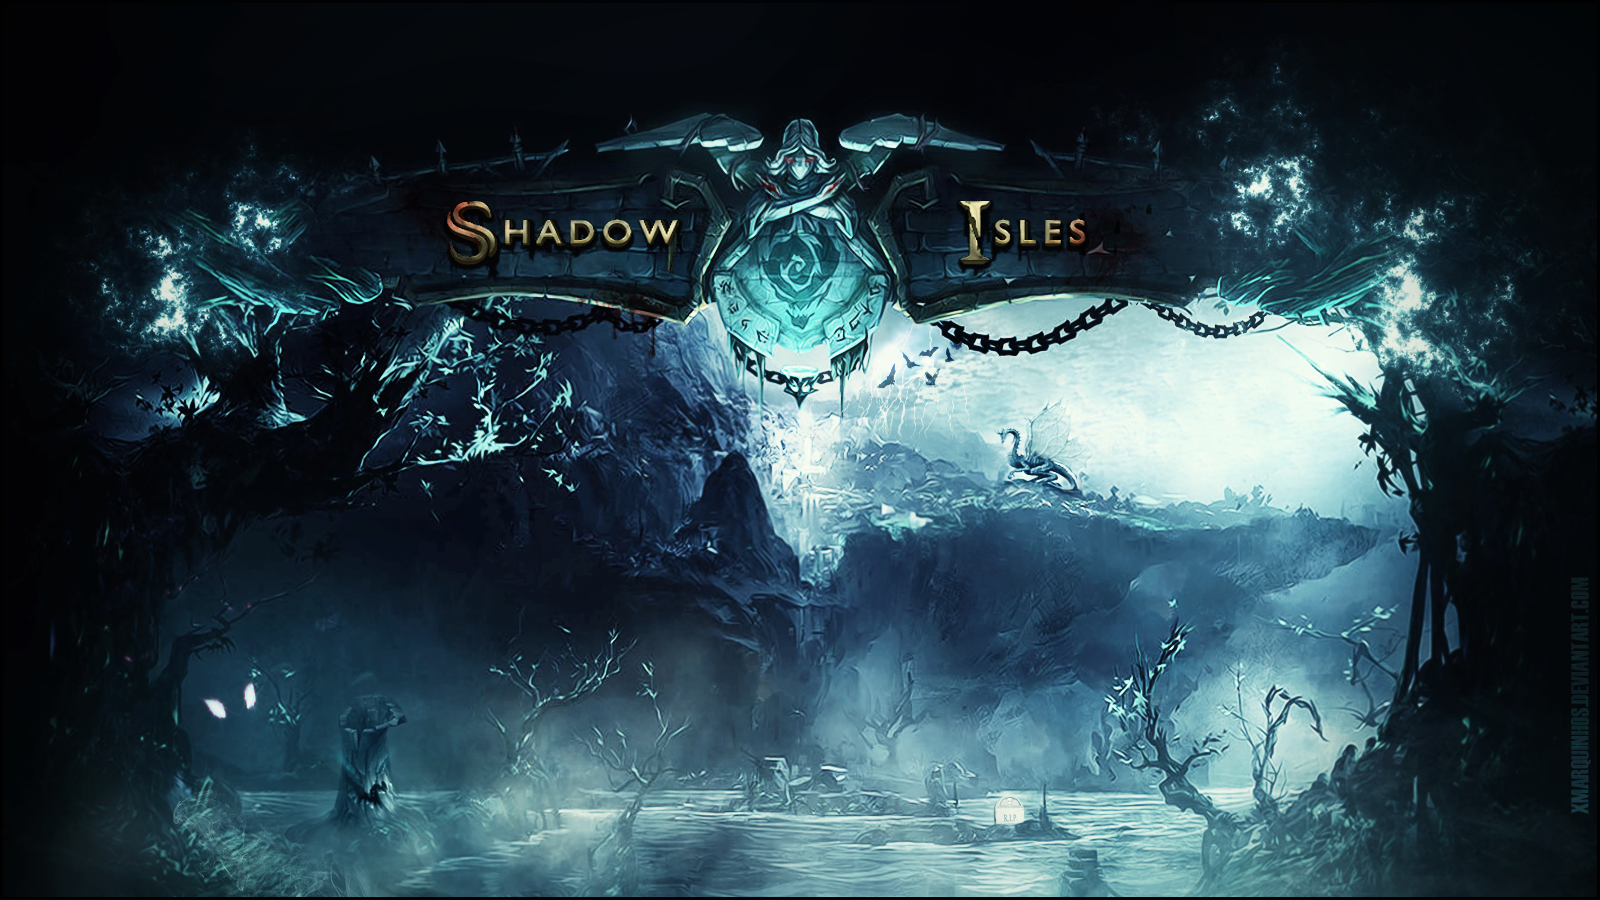 Wallpaper - Shadow Isles - League of Legends by xMarquinhos